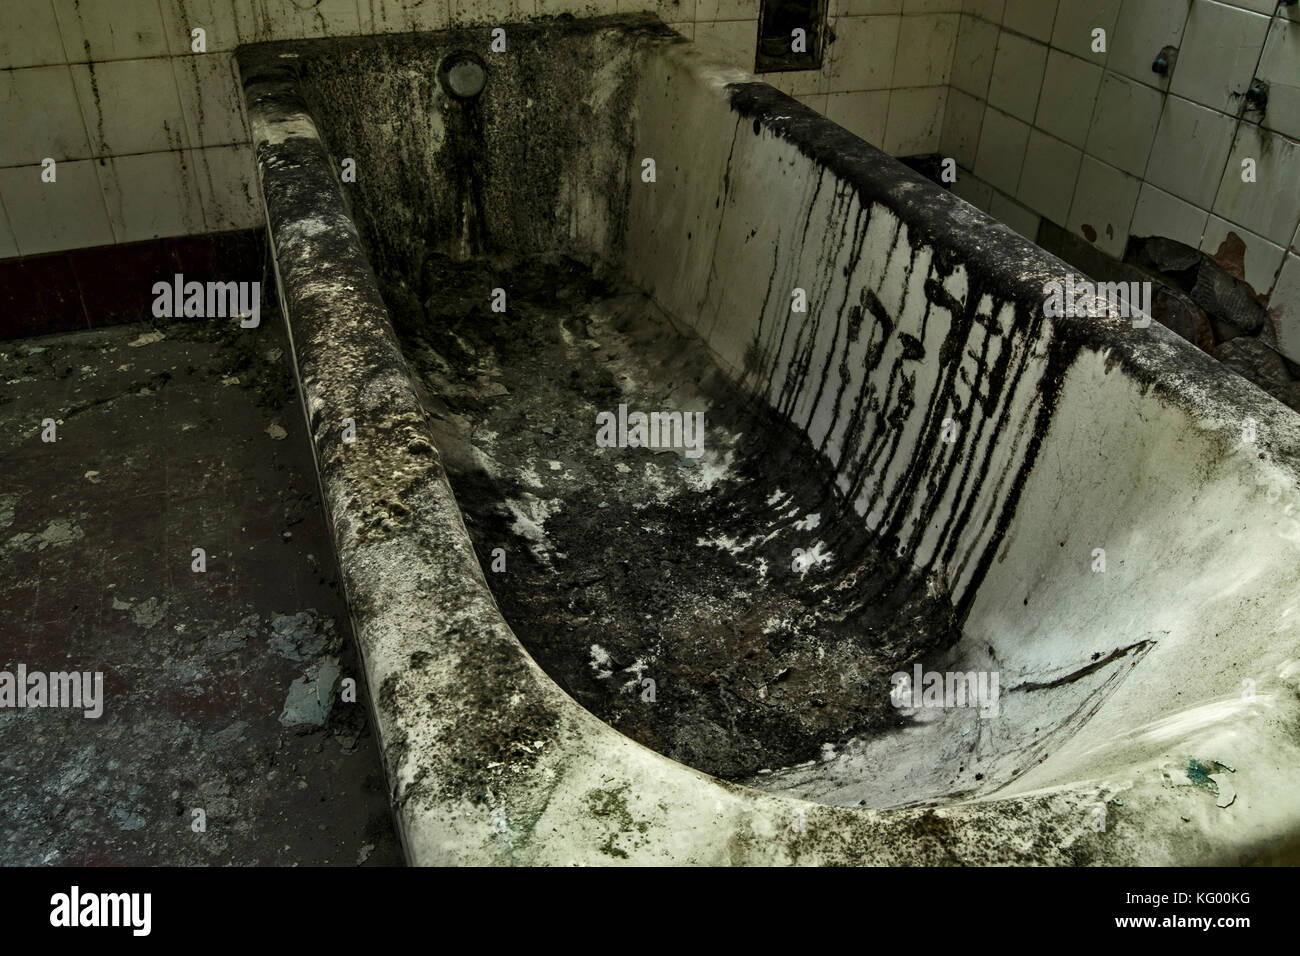 an old tub inside an abandoned psychiatric hospital, very dirt and encrusted - Stock Image